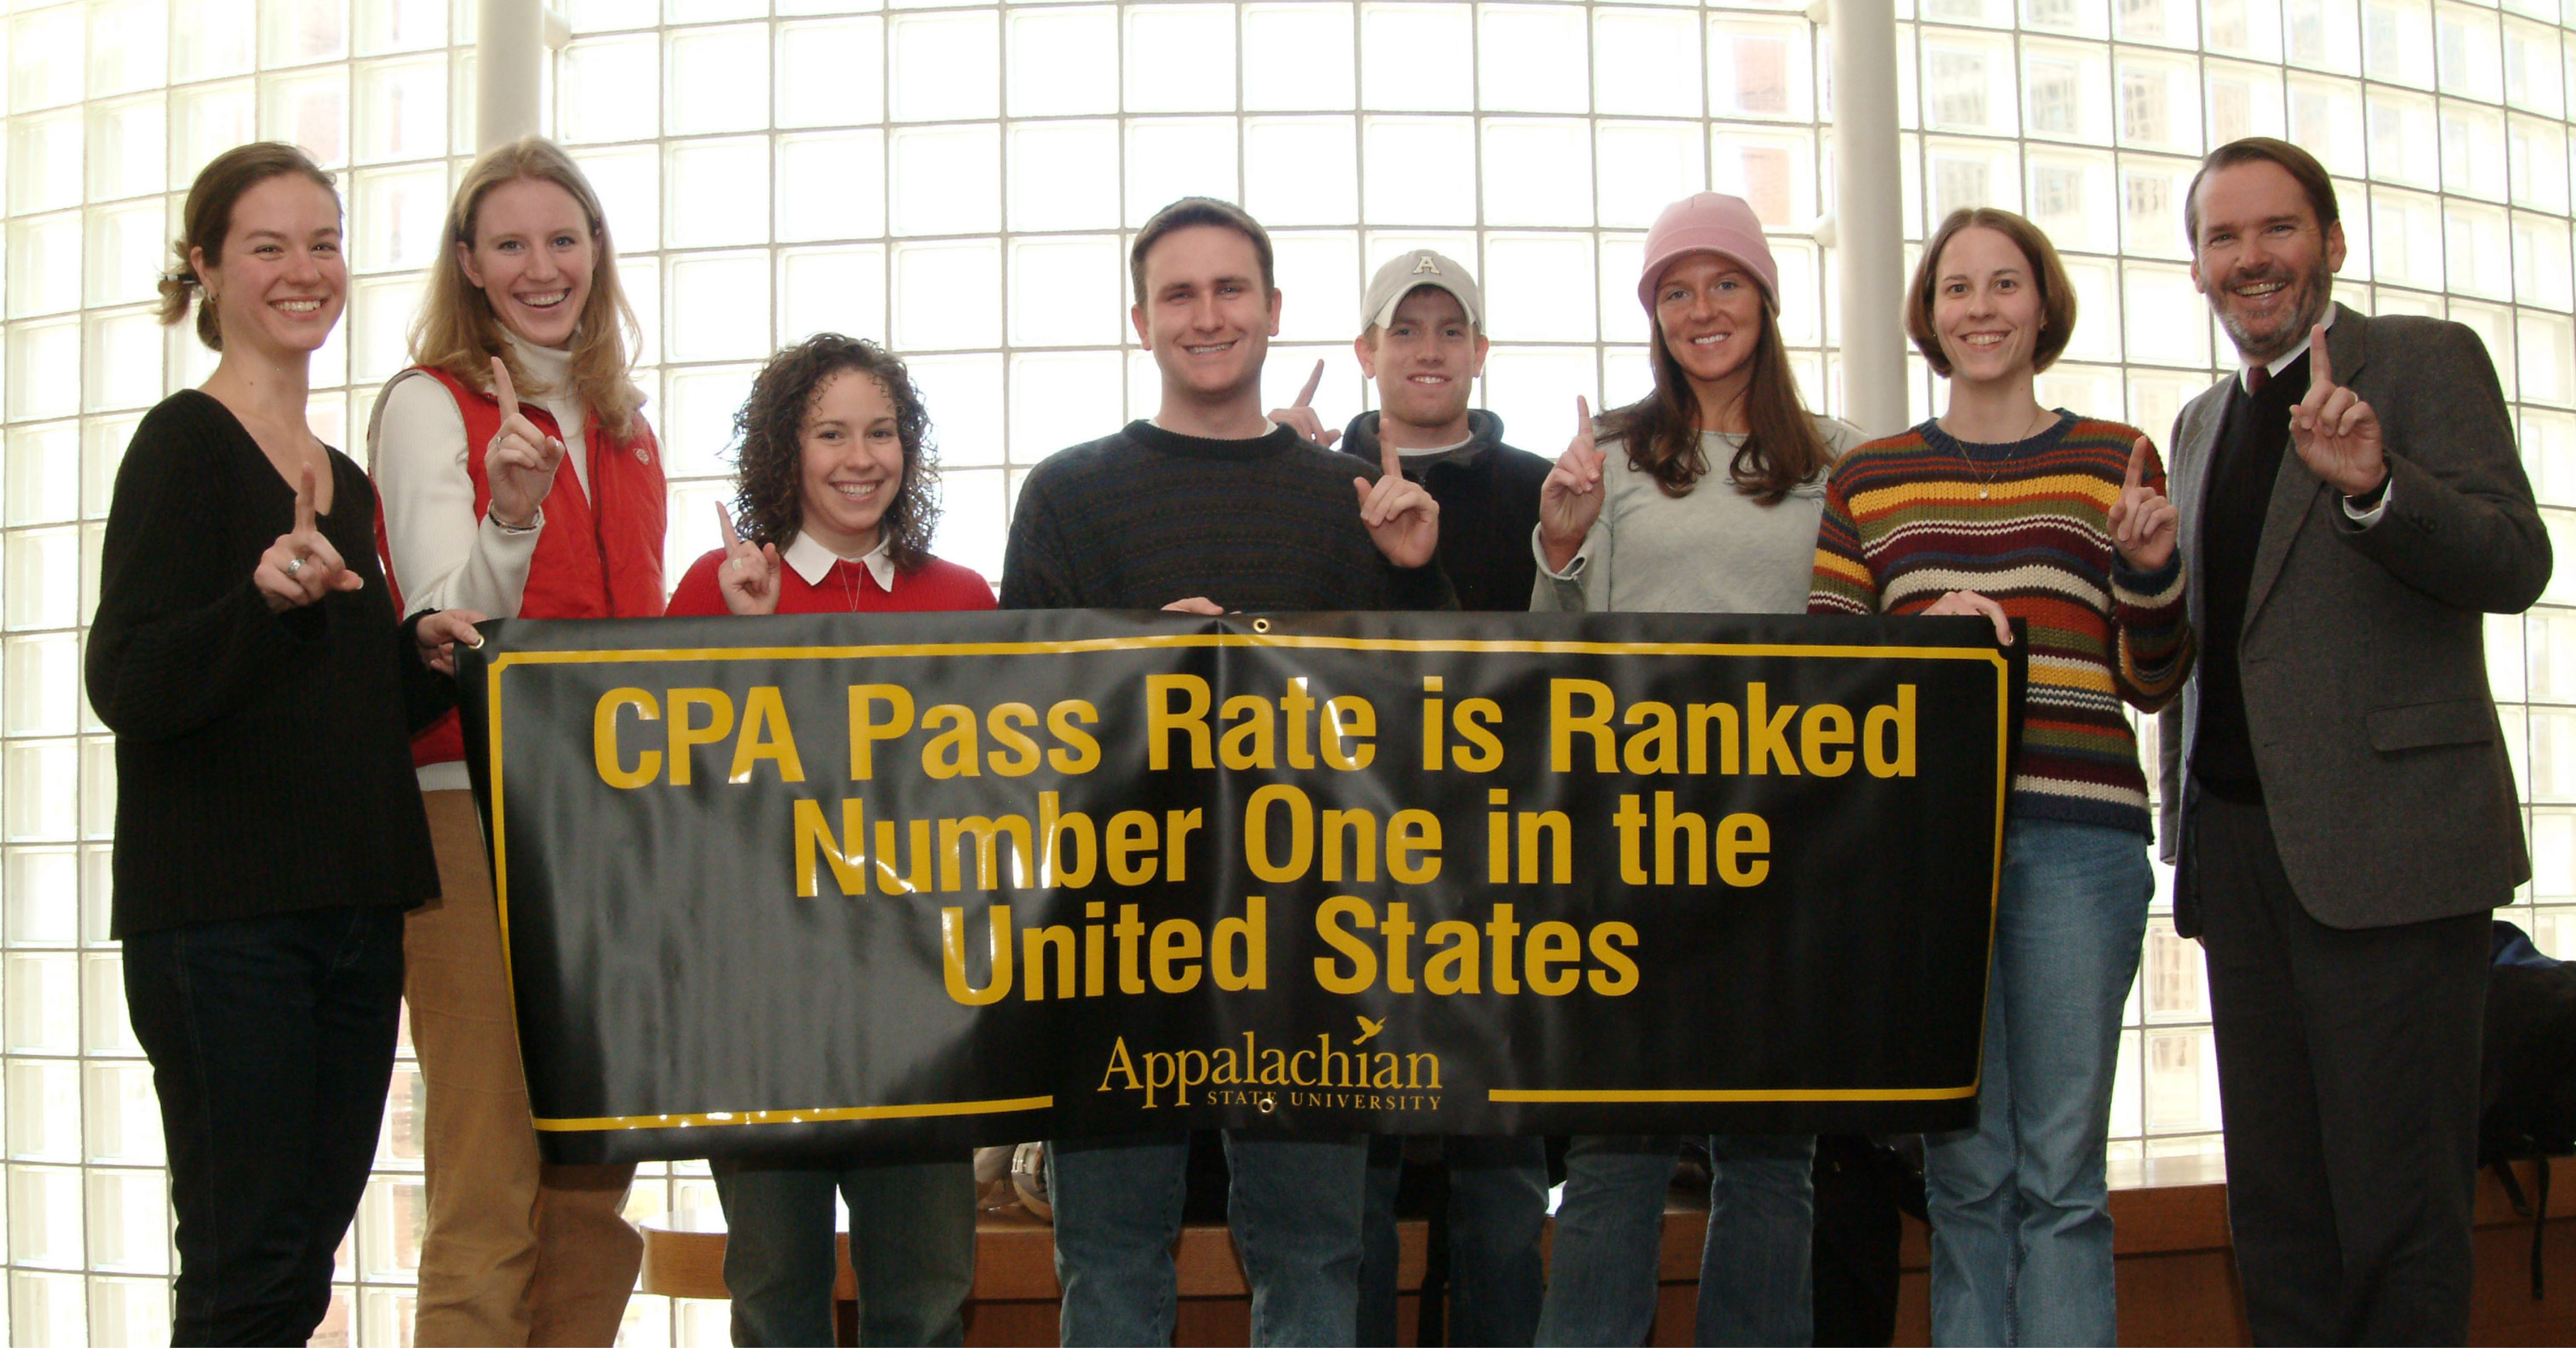 Accounting students celebrate top CPA pass rate